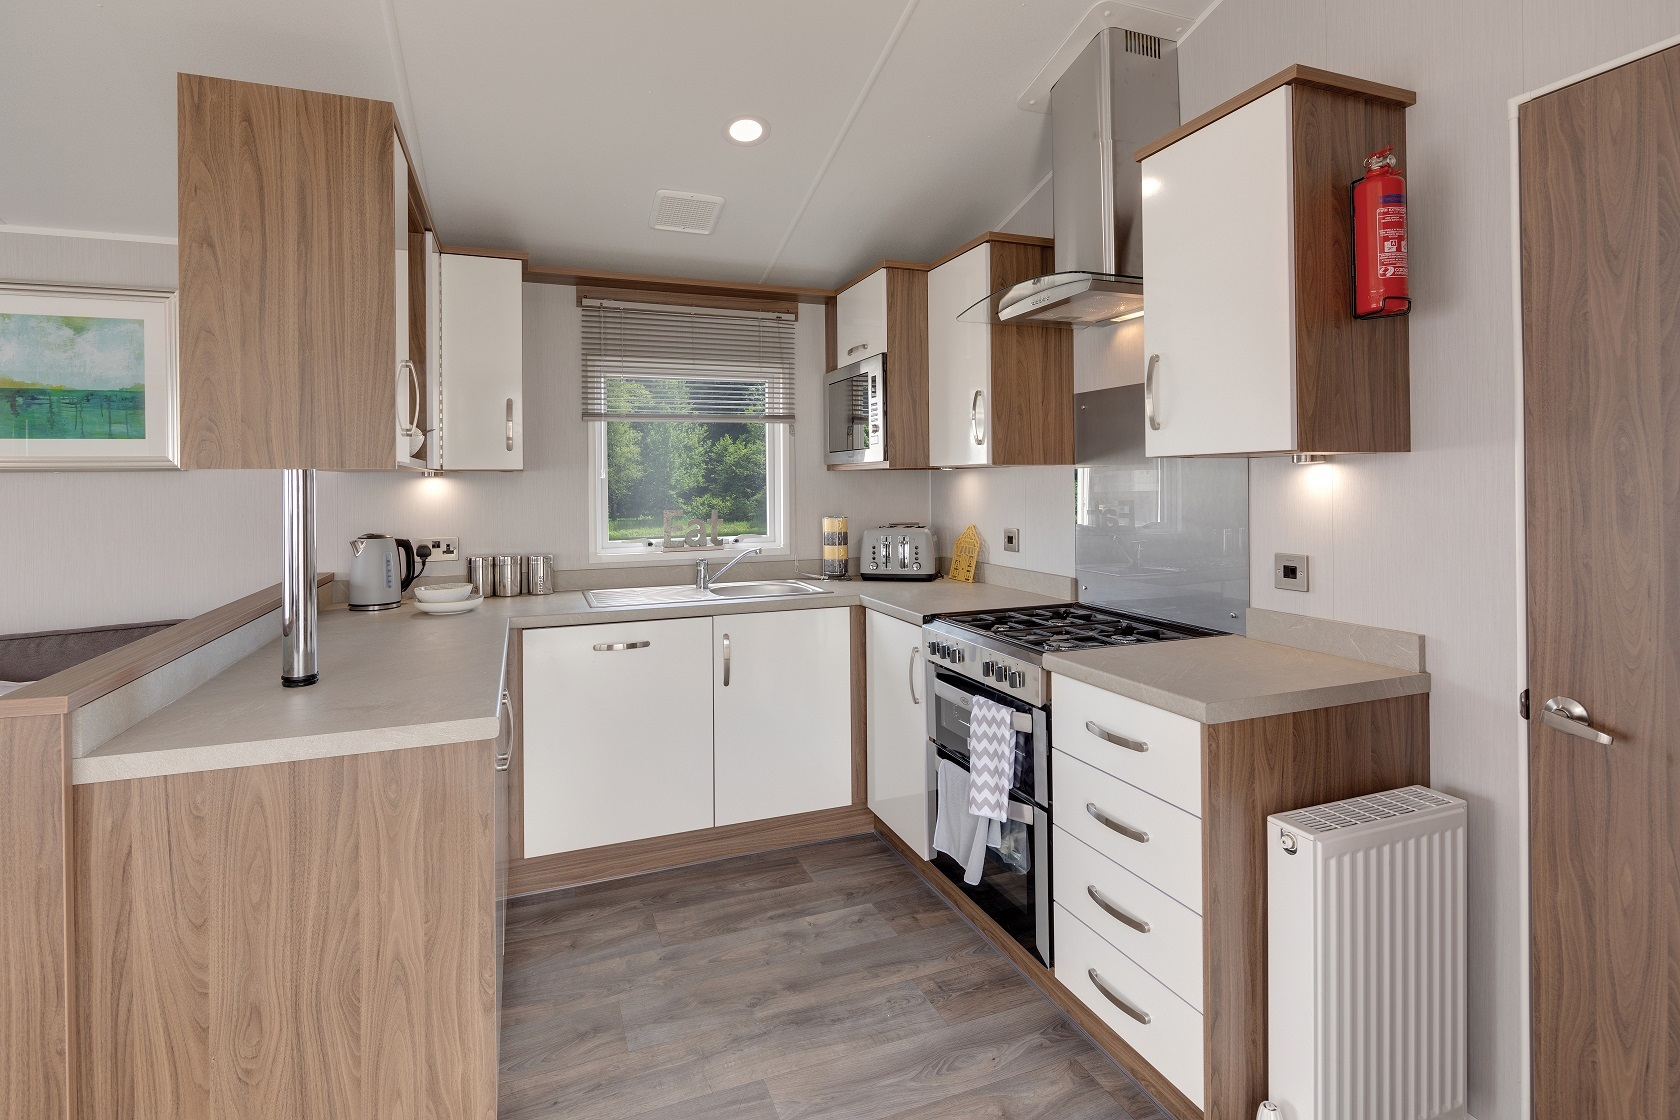 Willerby Avonmore: Static Caravans and Holiday Homes for Sale on Caravan Parks, Ripon, North Yorkshire Large Image 3